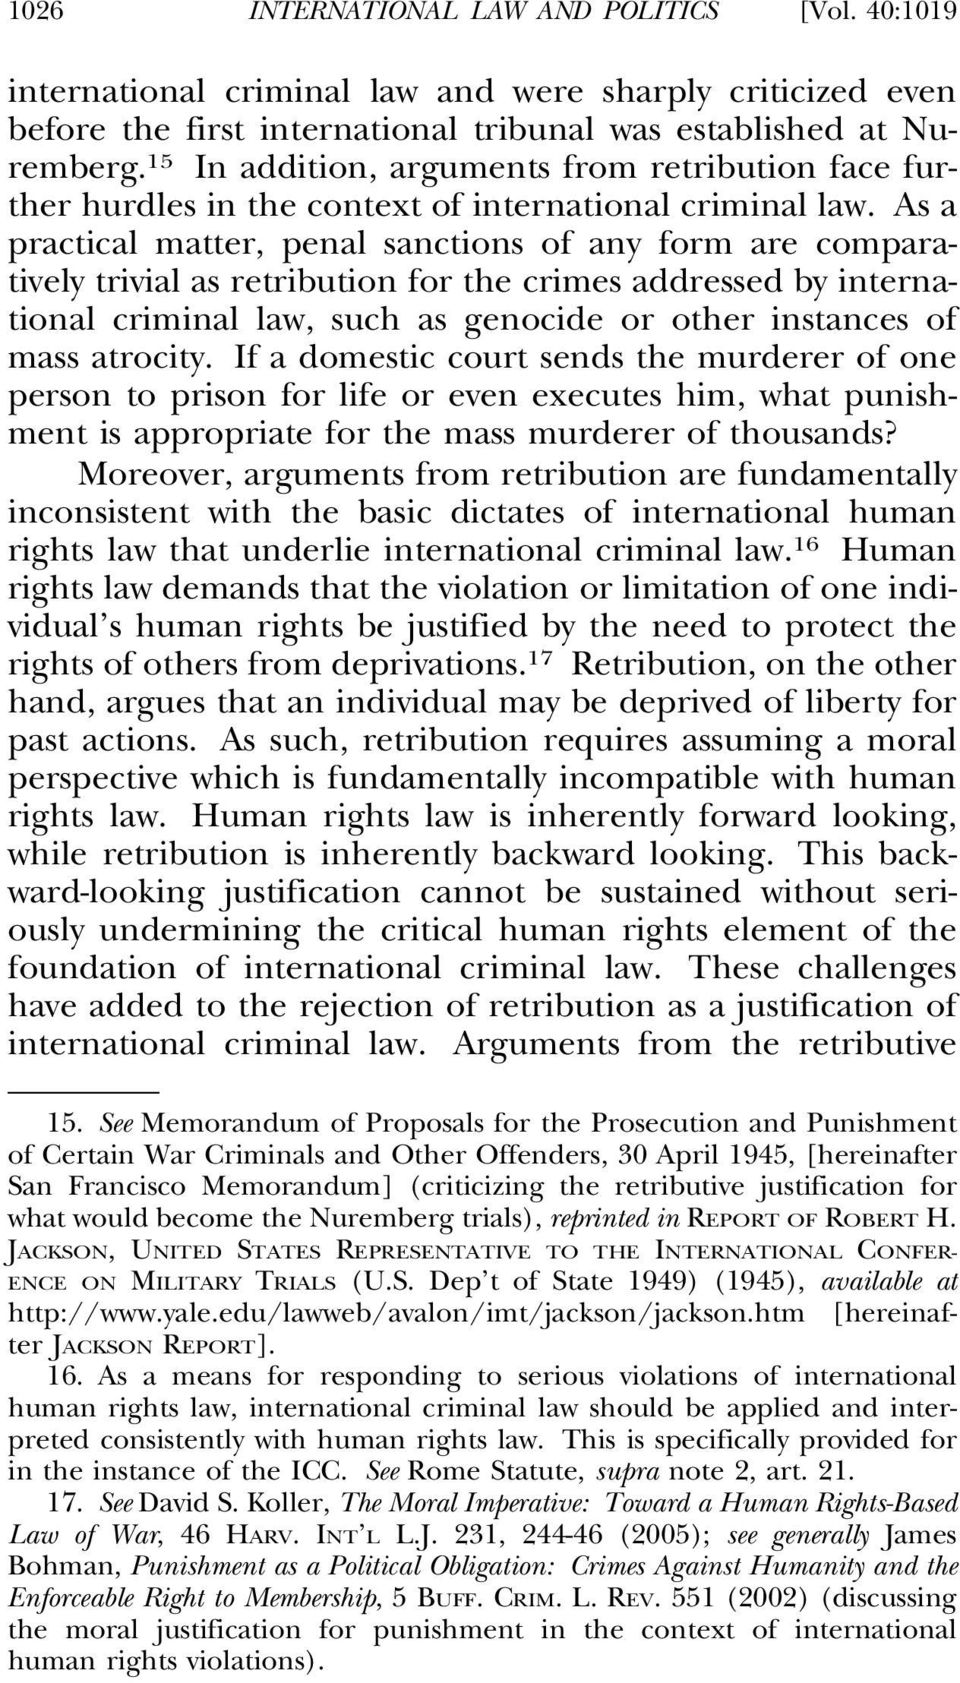 As a practical matter, penal sanctions of any form are comparatively trivial as retribution for the crimes addressed by international criminal law, such as genocide or other instances of mass